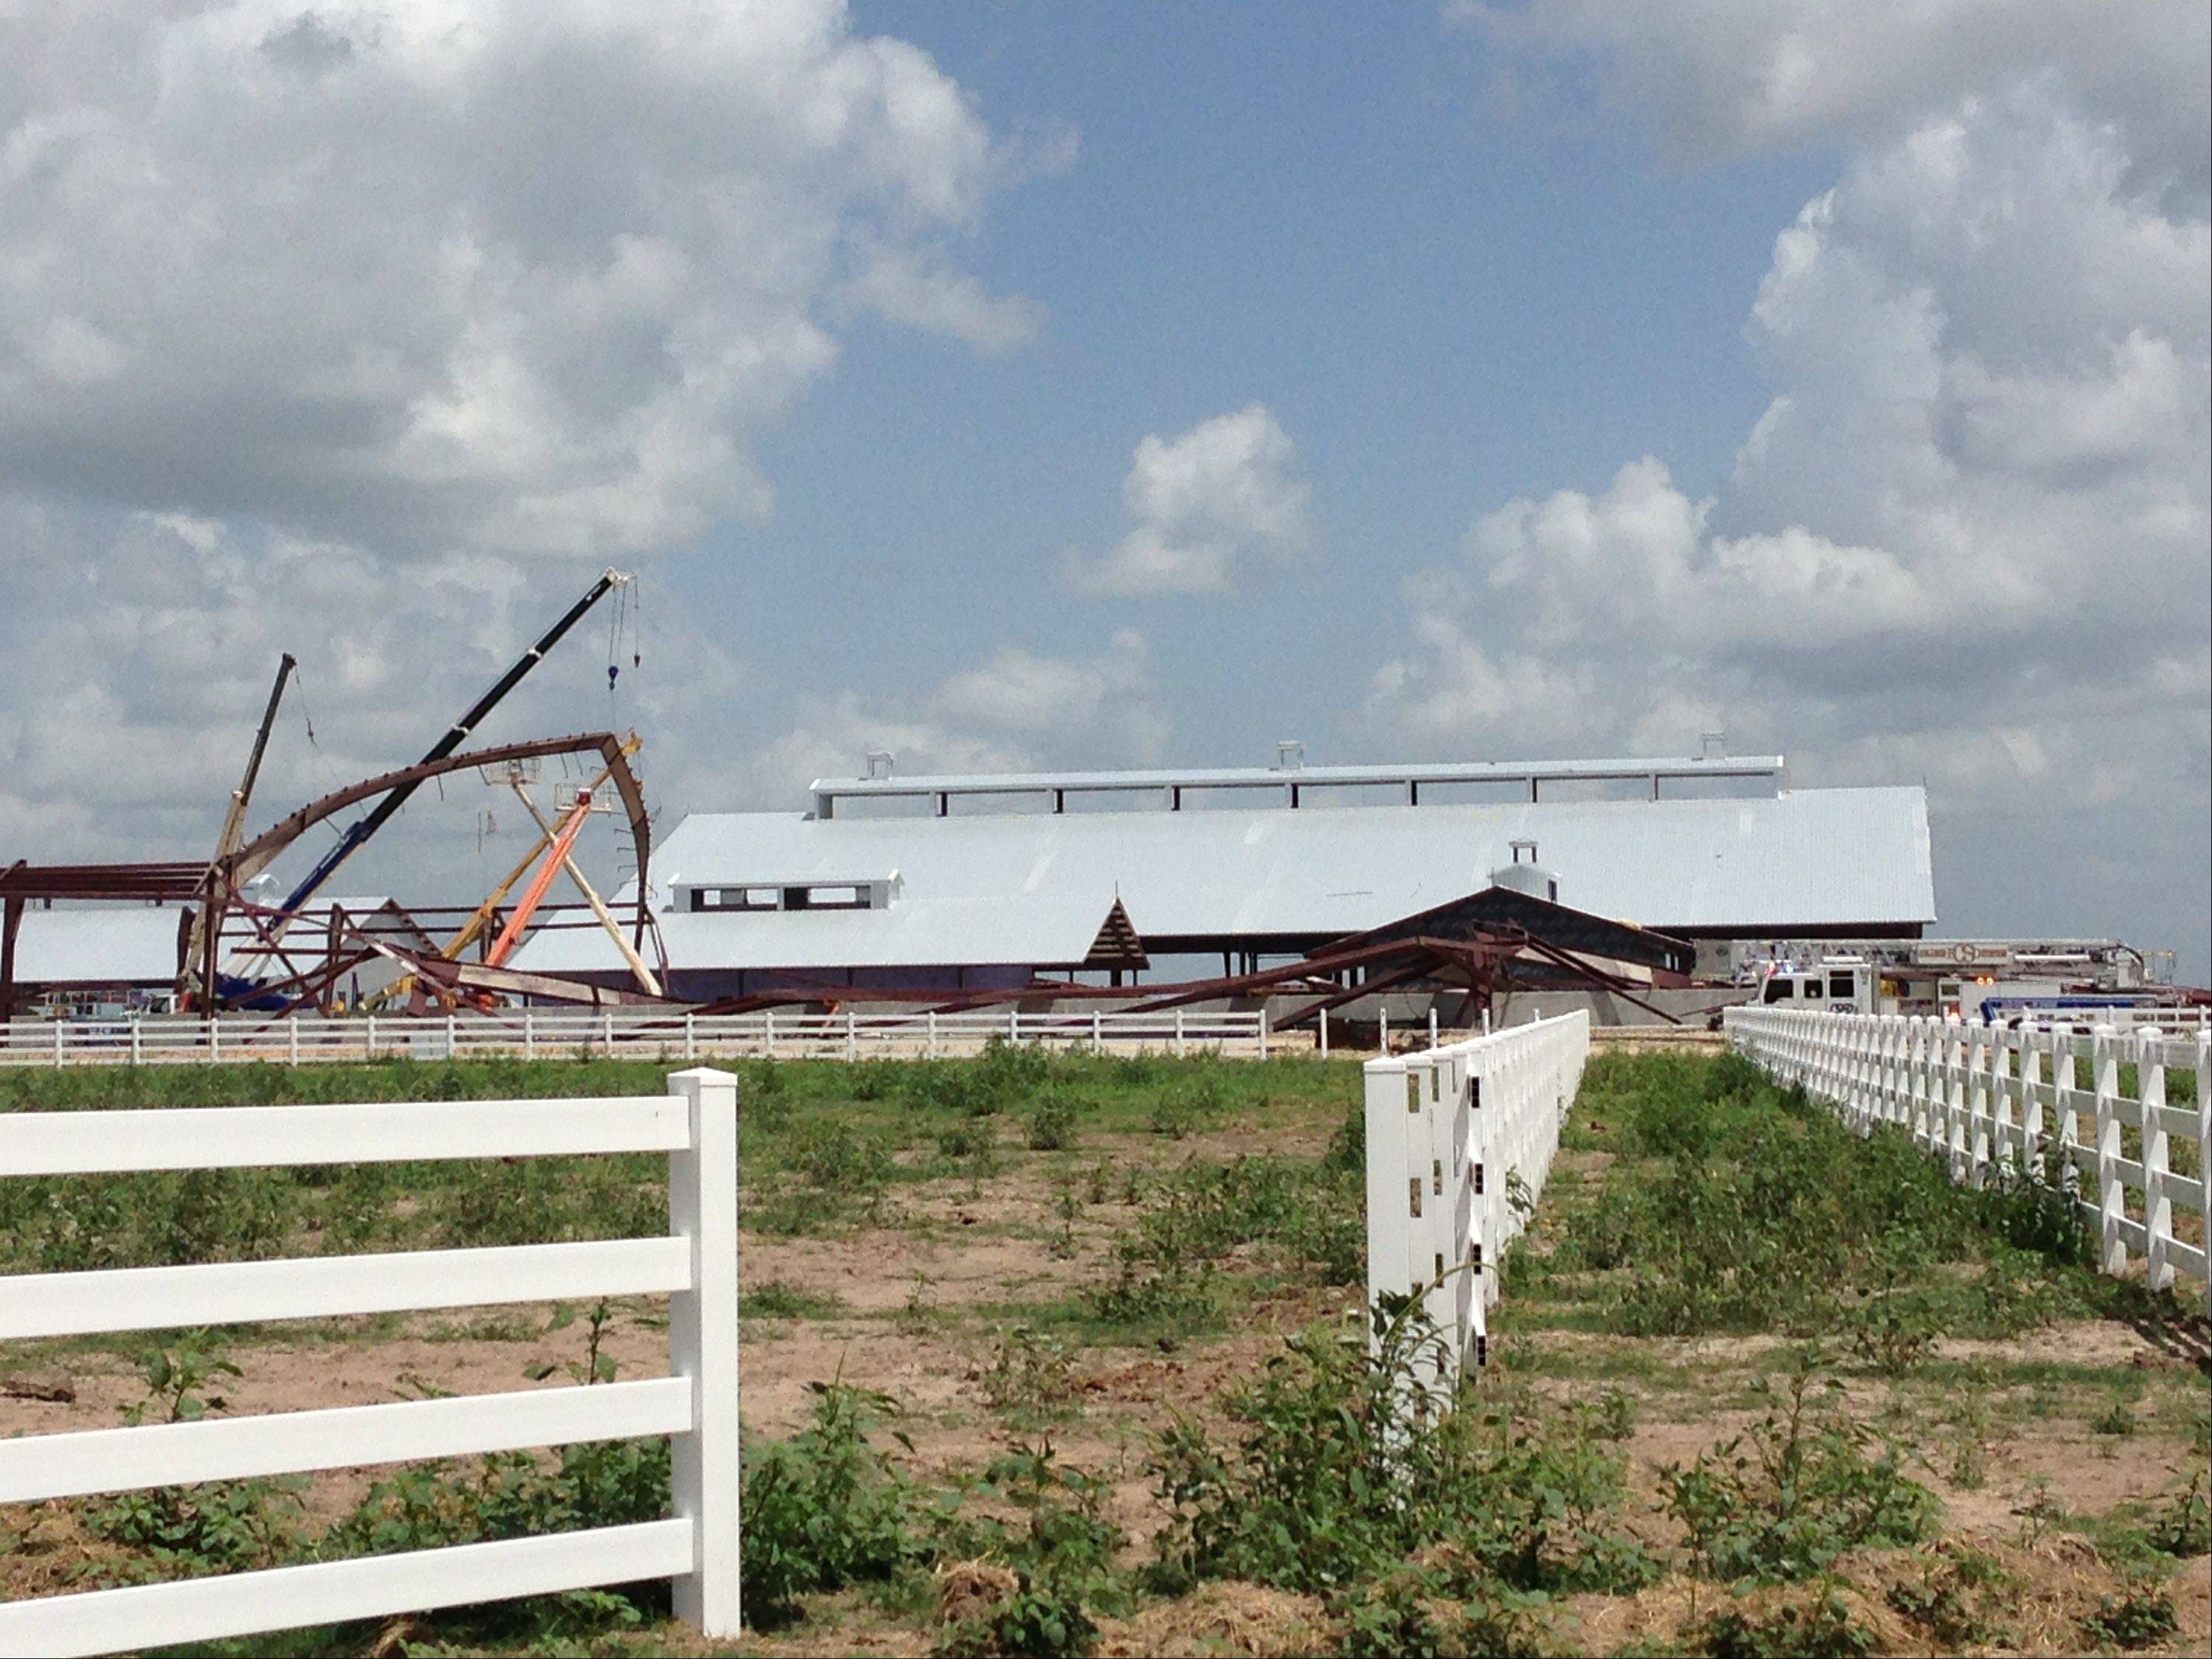 The Texas A&M University equestrian center near College Station, Texas, collapsed during construction Saturday.